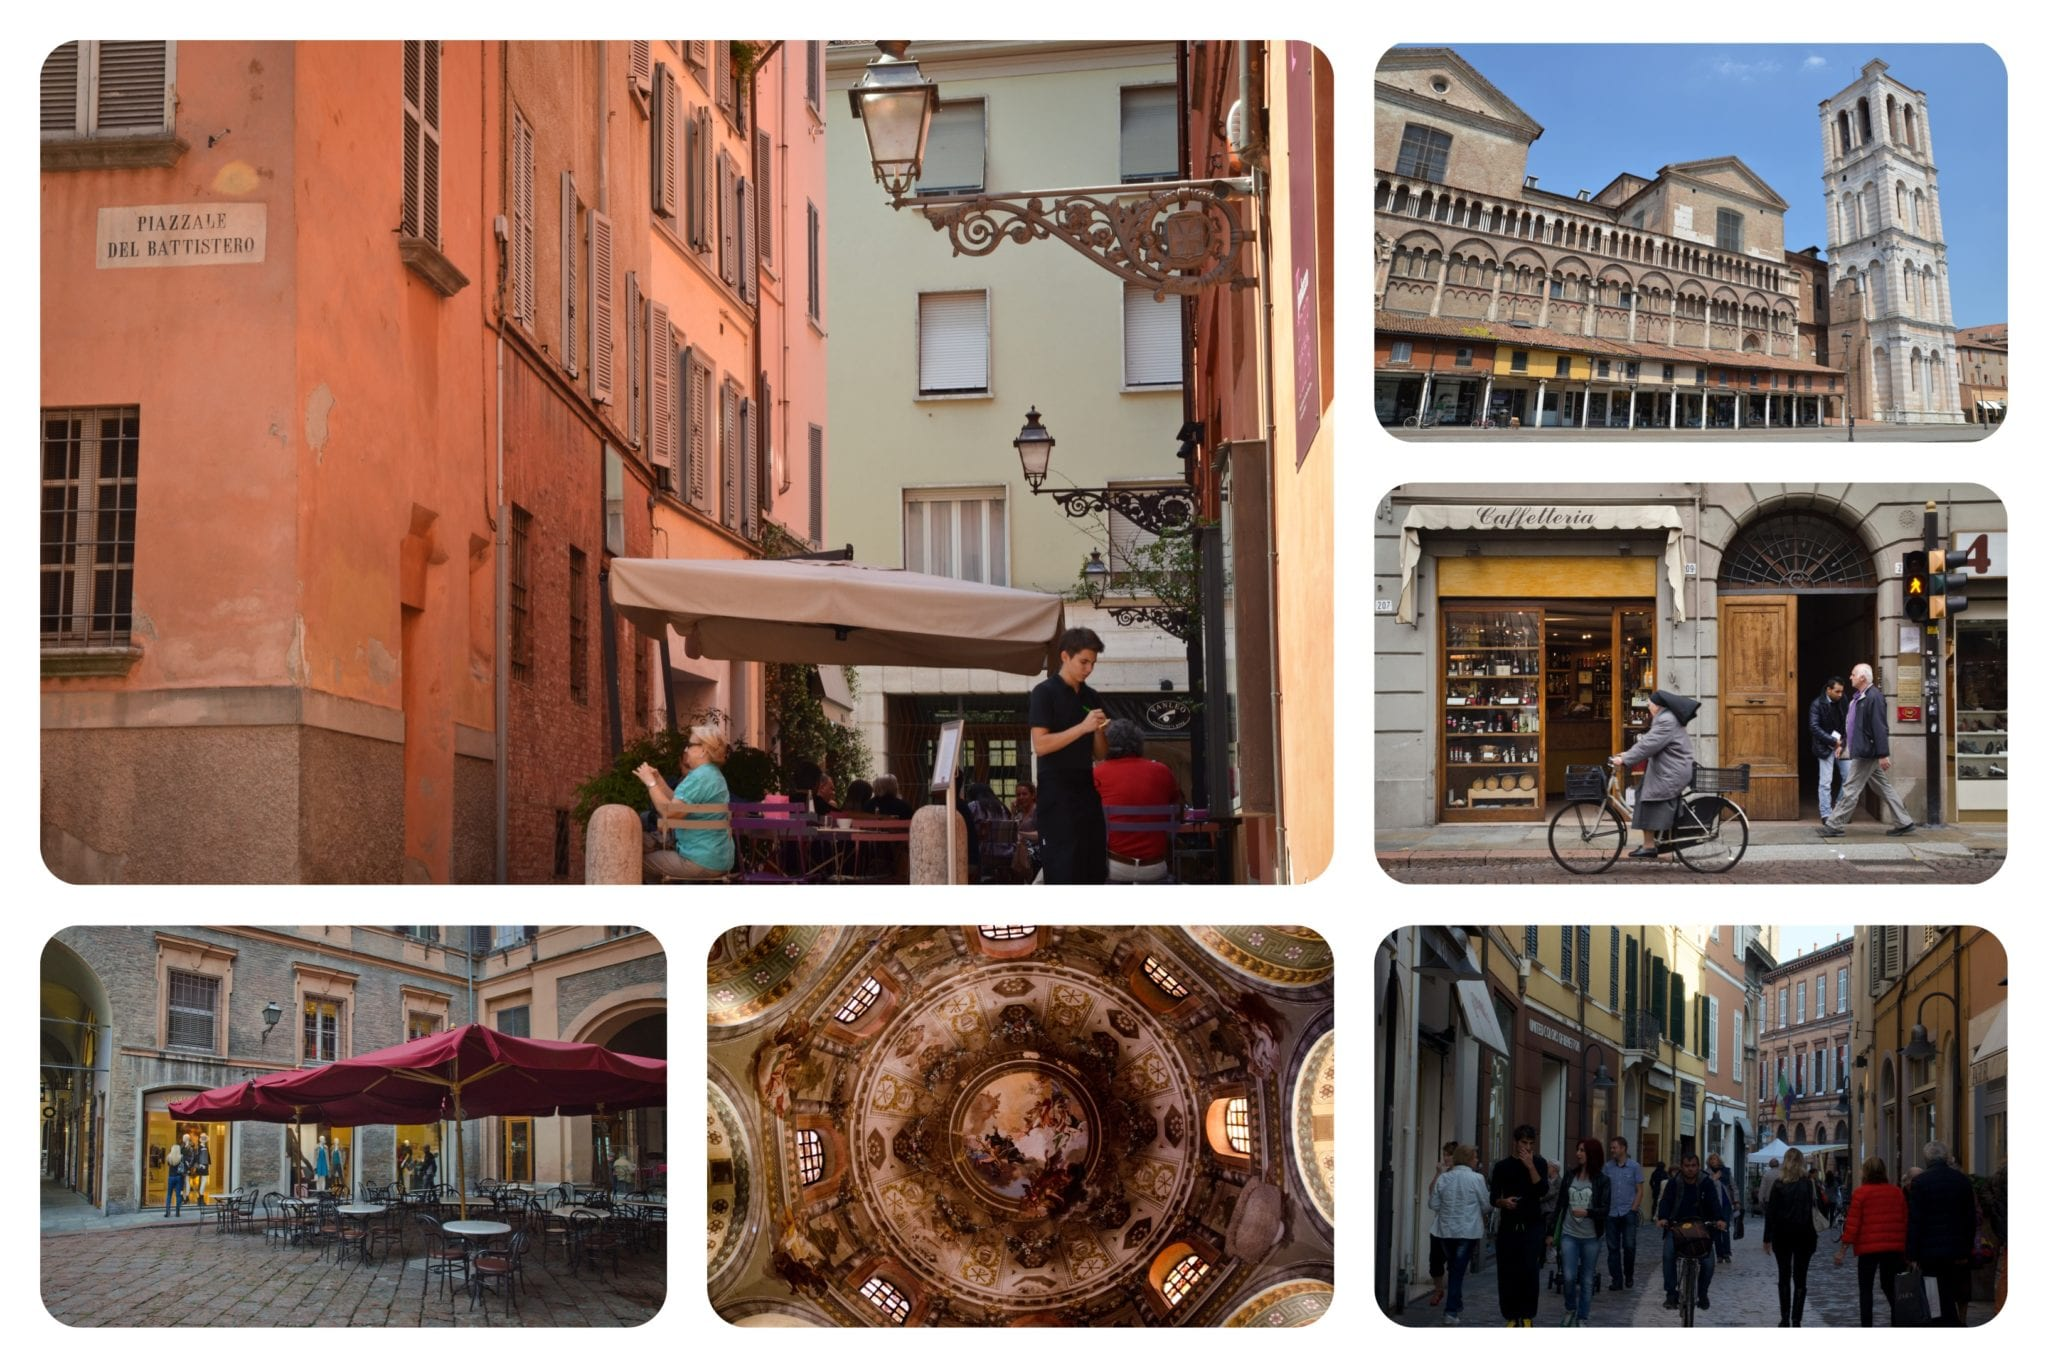 Best of 2013: Small Cities of Emilia-Romagna